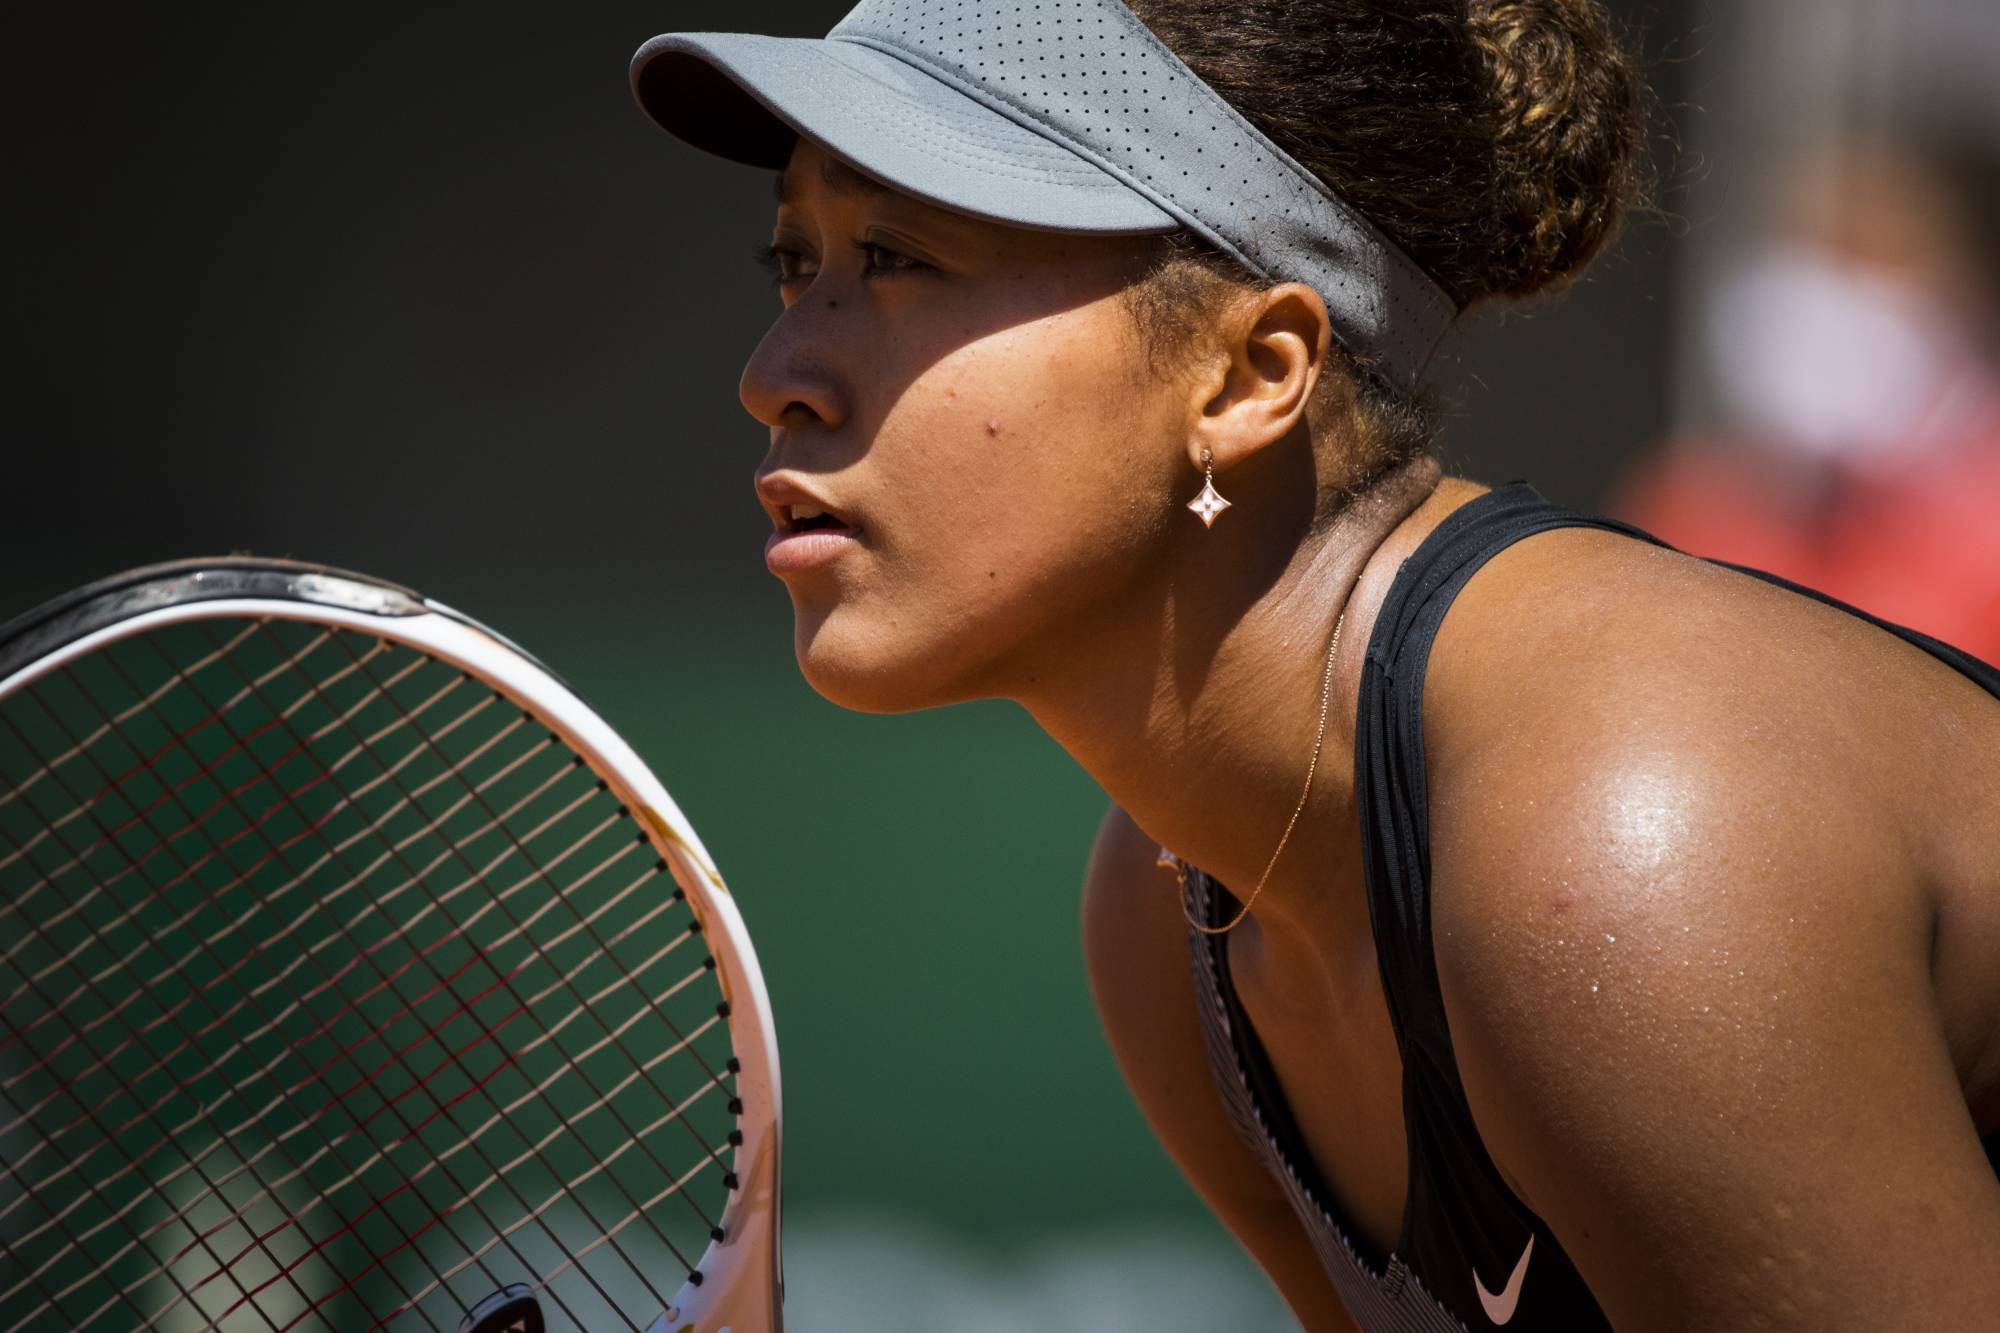 Naomi Osaka during her first round match at the French Open in Paris in May.  | PETE KIEHART / THE NEW YORK TIMES